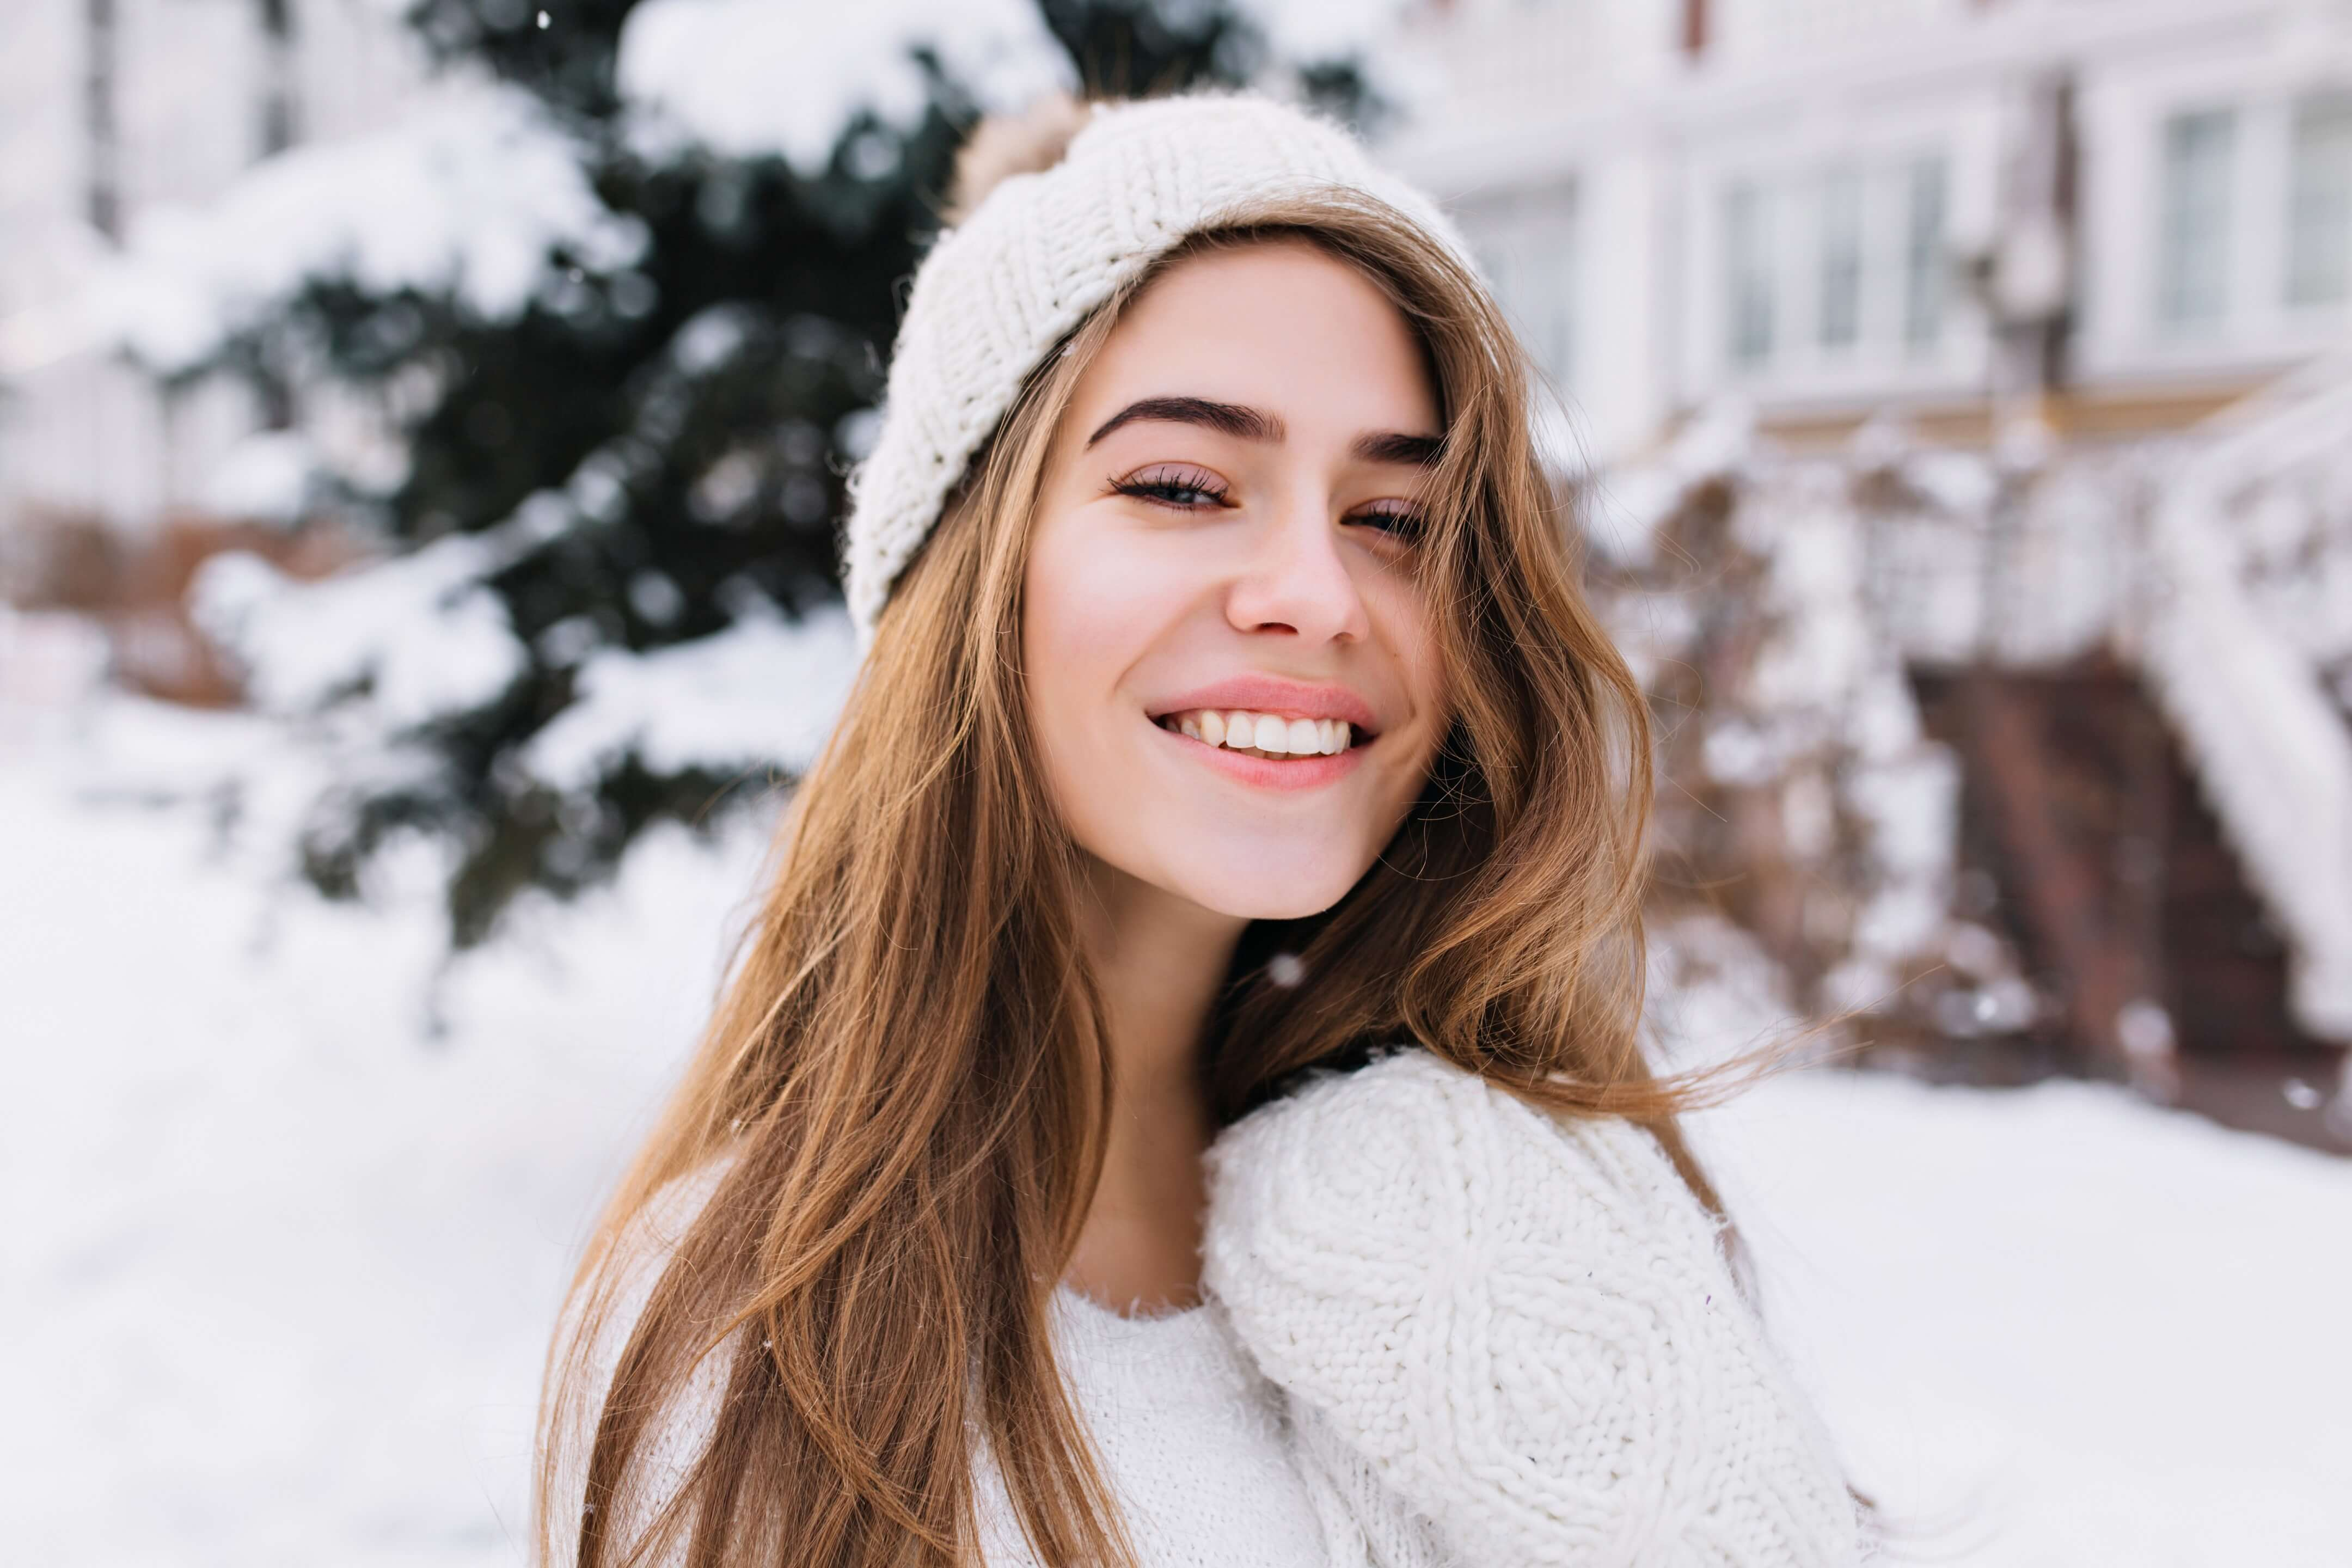 Girl with long hair outside in winter with snow